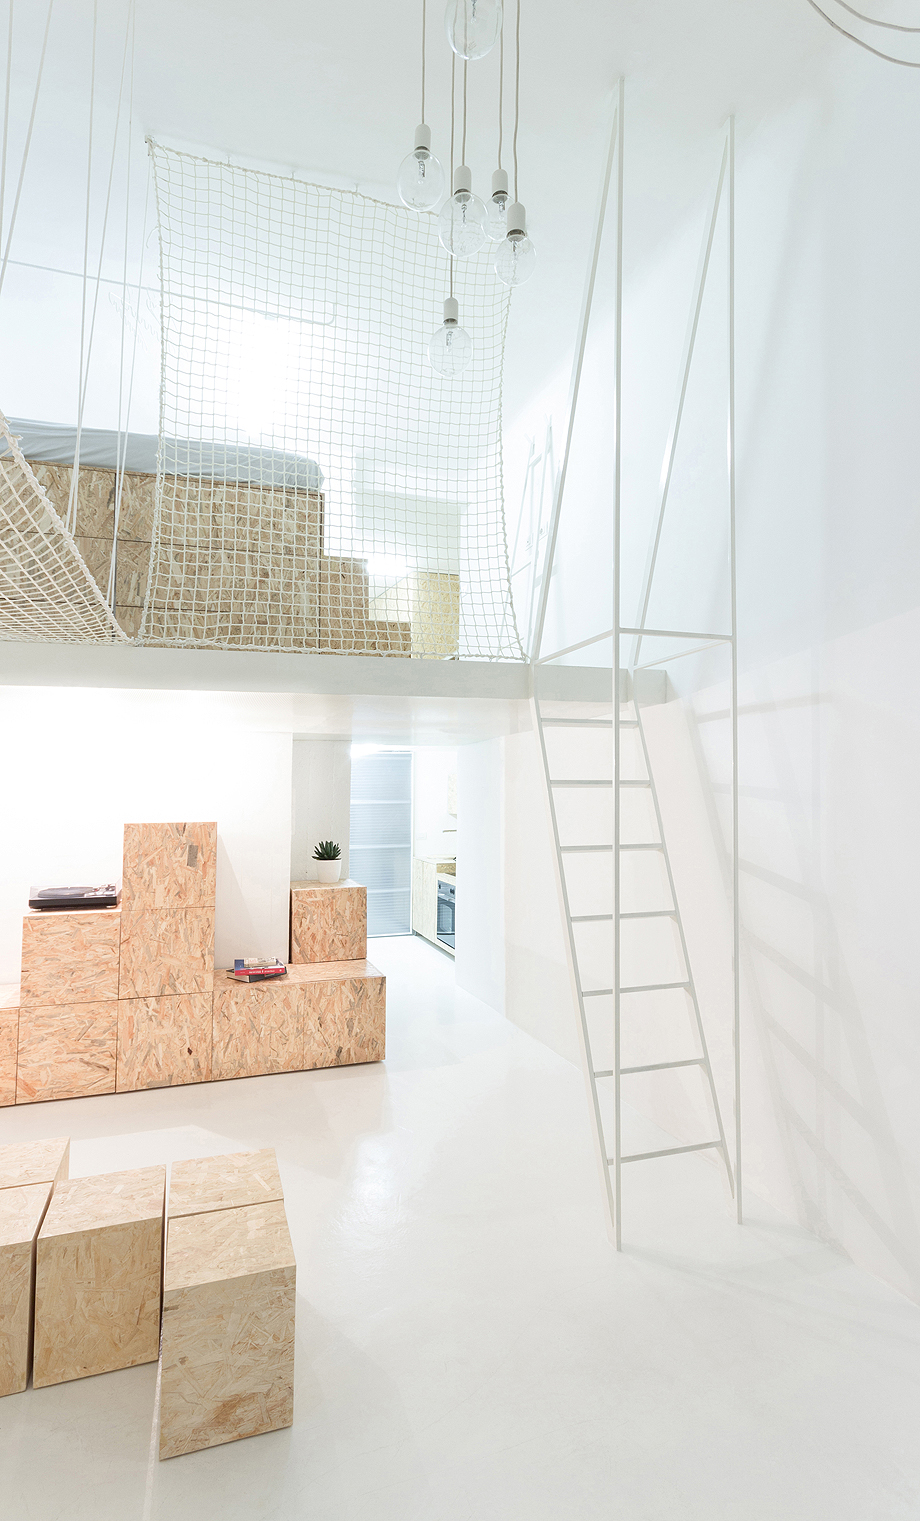 stairs officina dell'architettura (4)